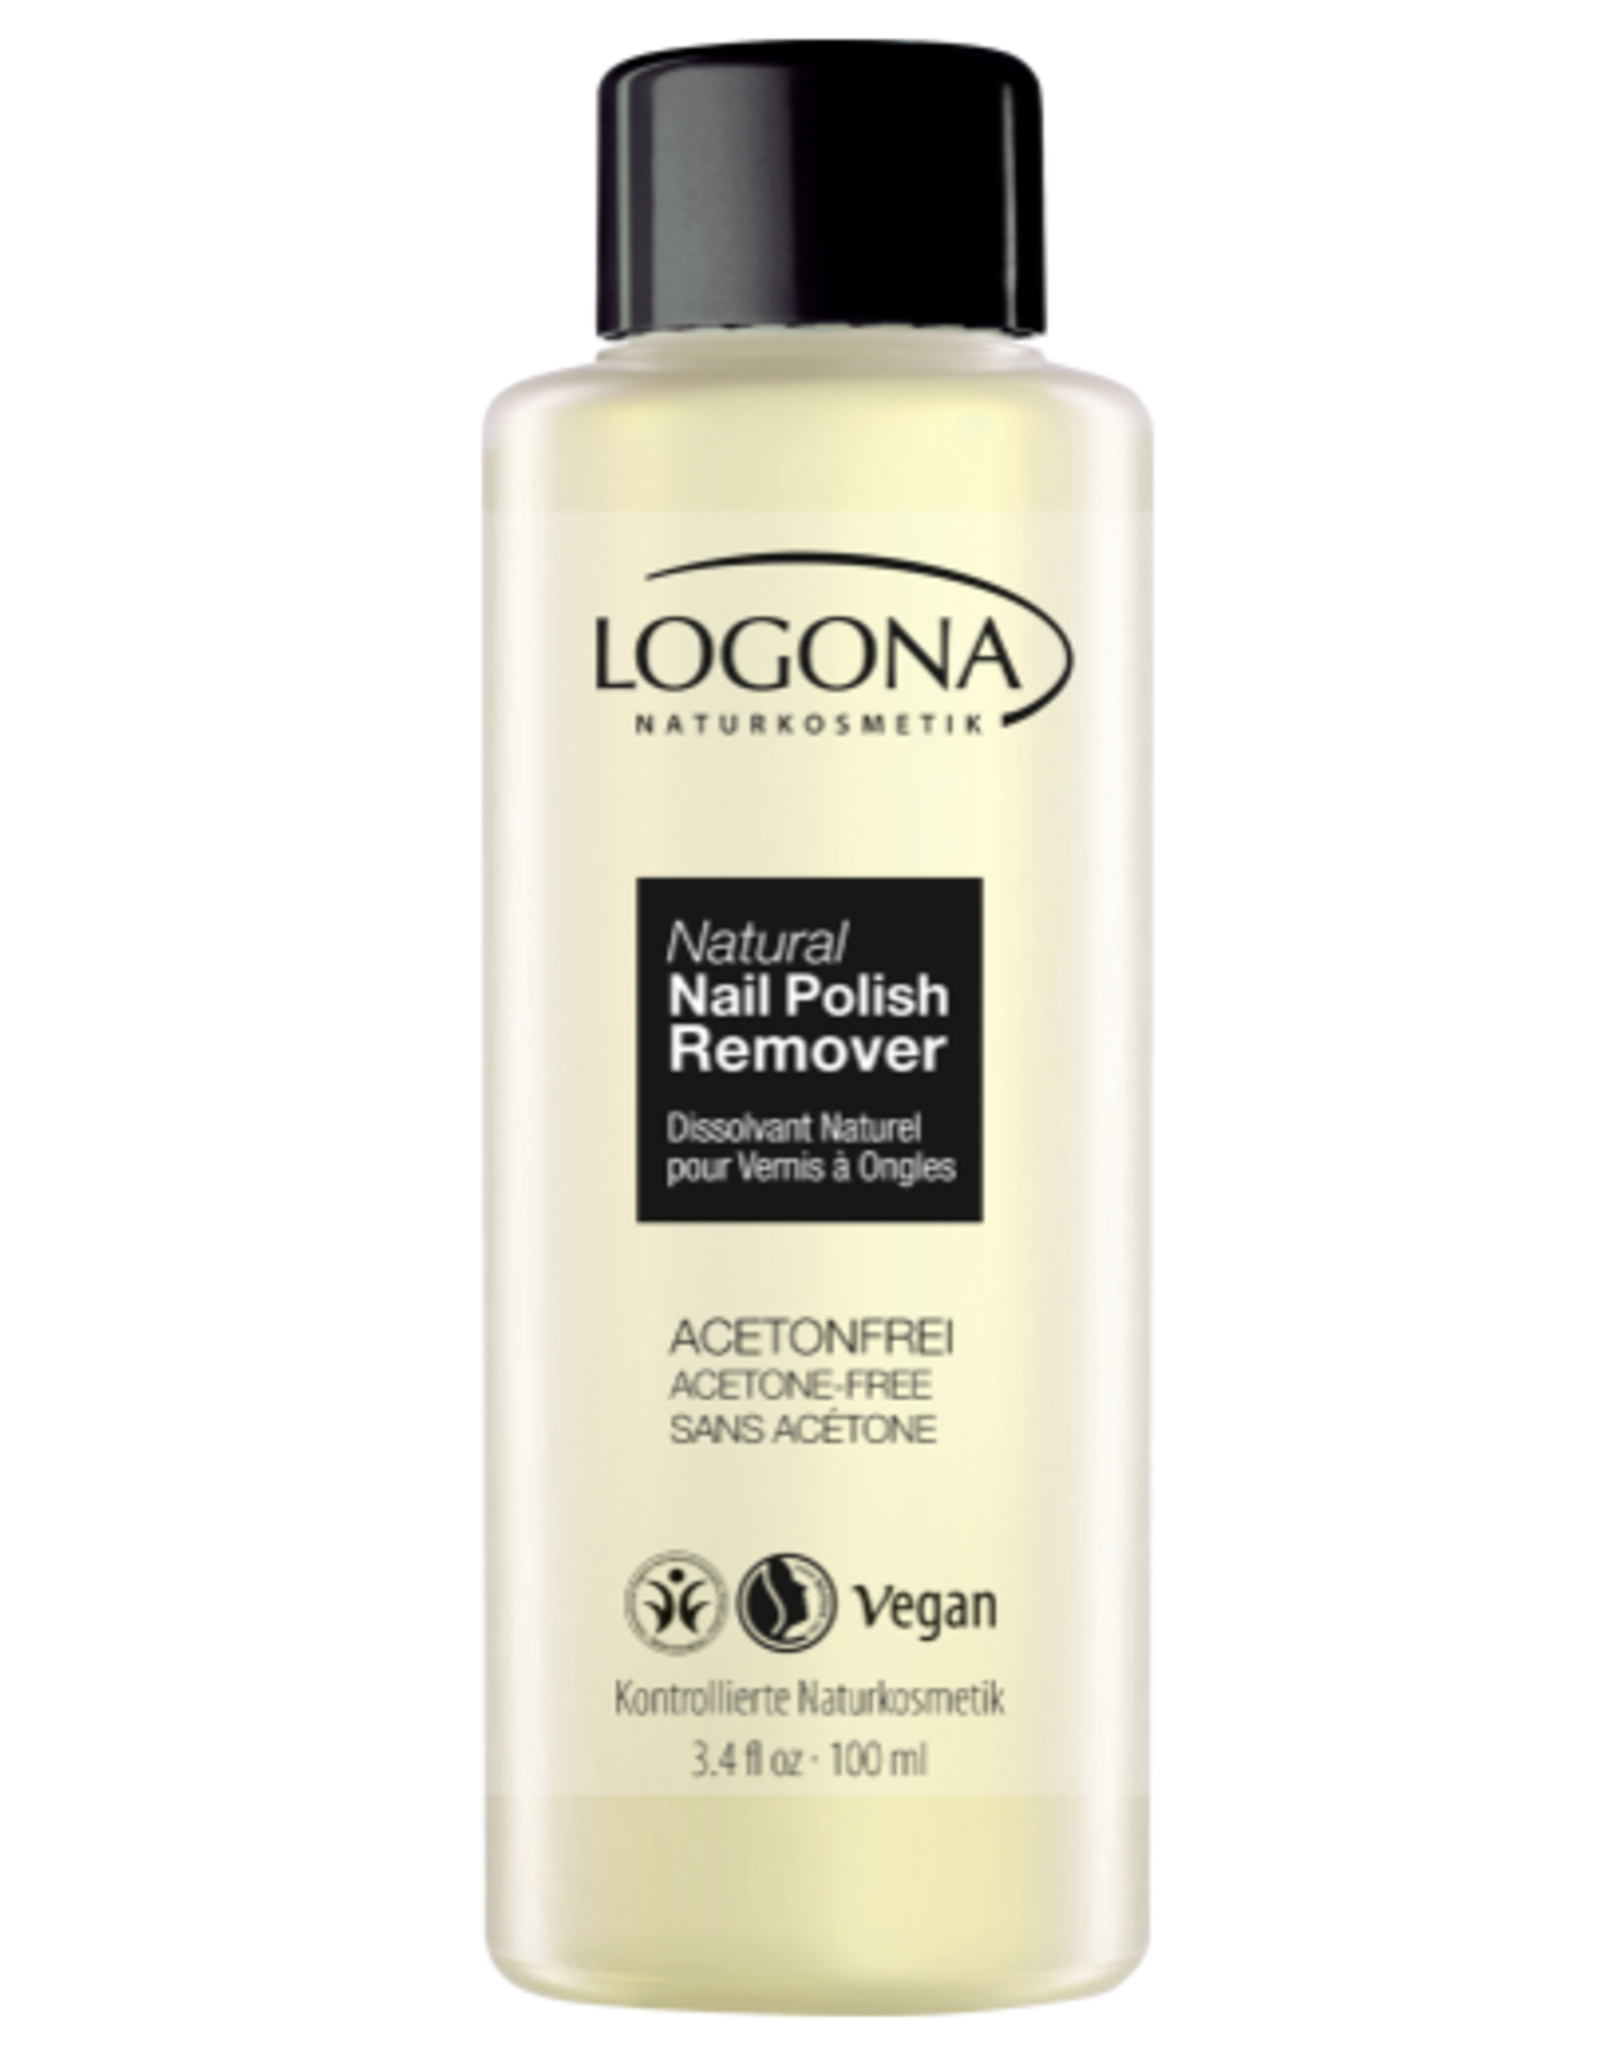 Logona Natural Nail Polish Remover 100ml